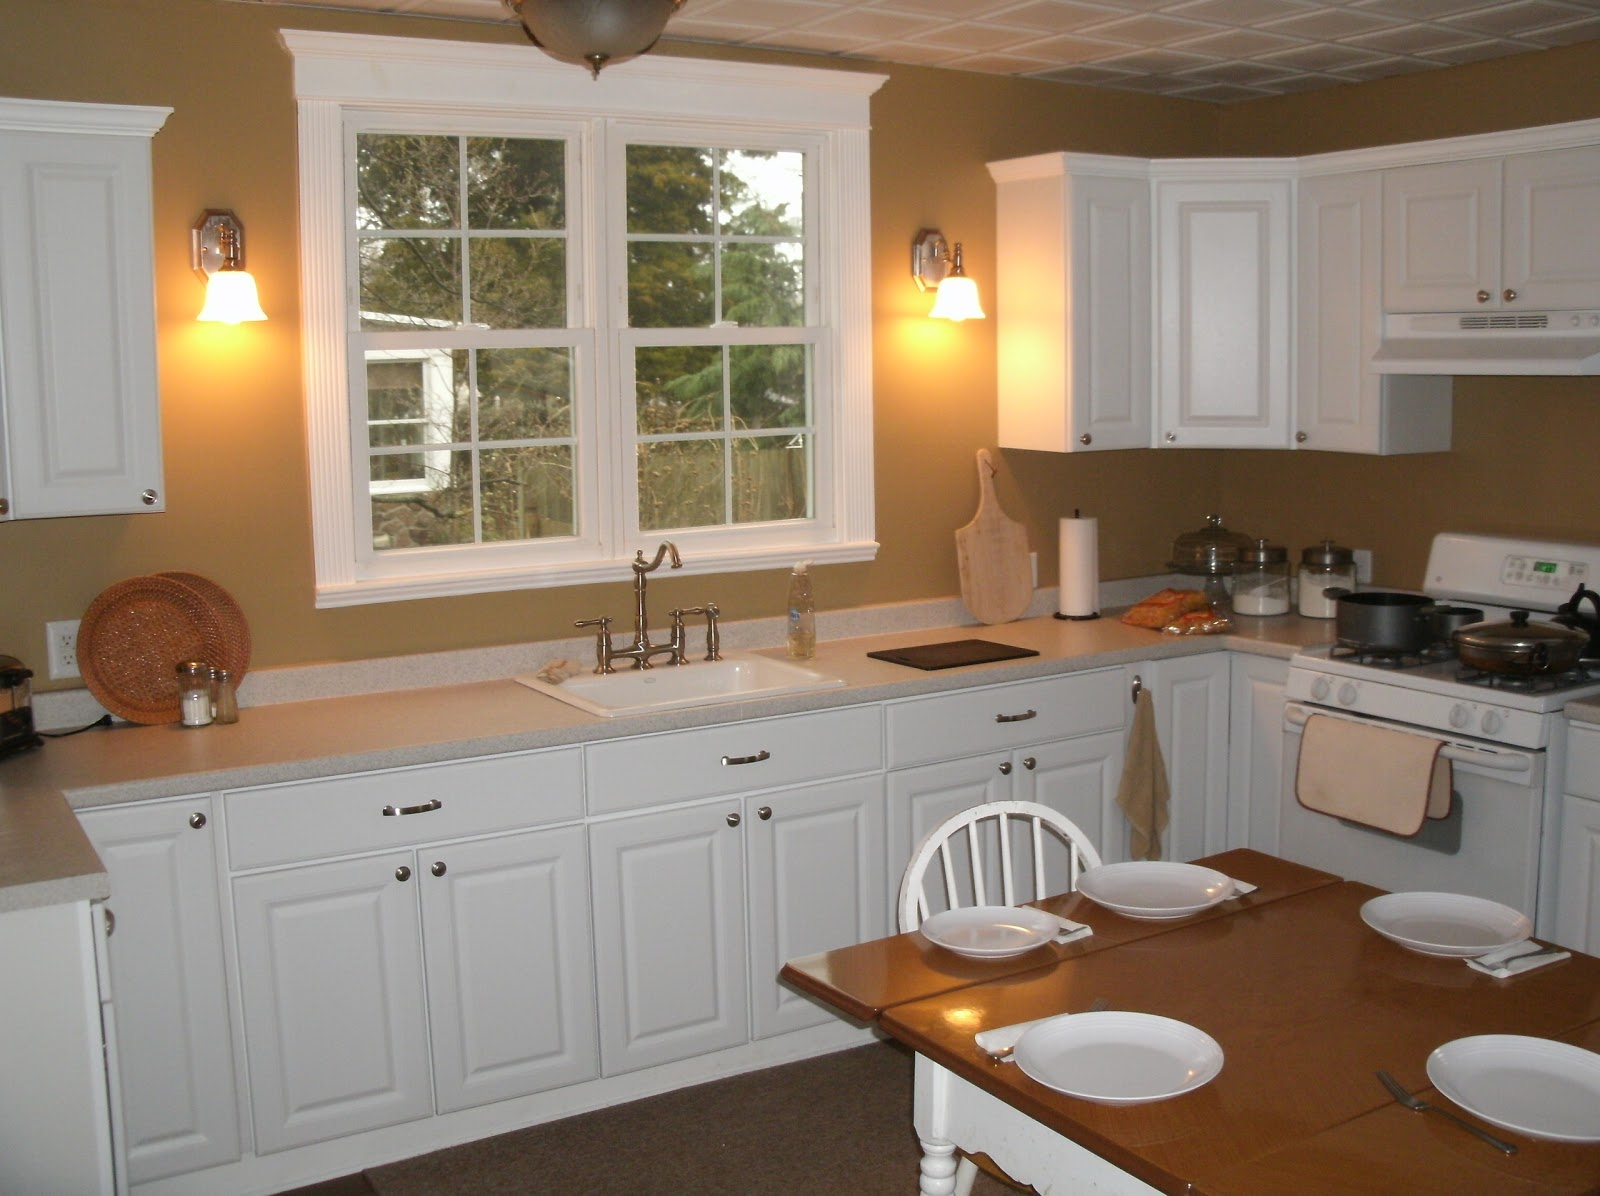 Home remodeling and improvements tips and how to 39 s for Complete kitchen remodel price